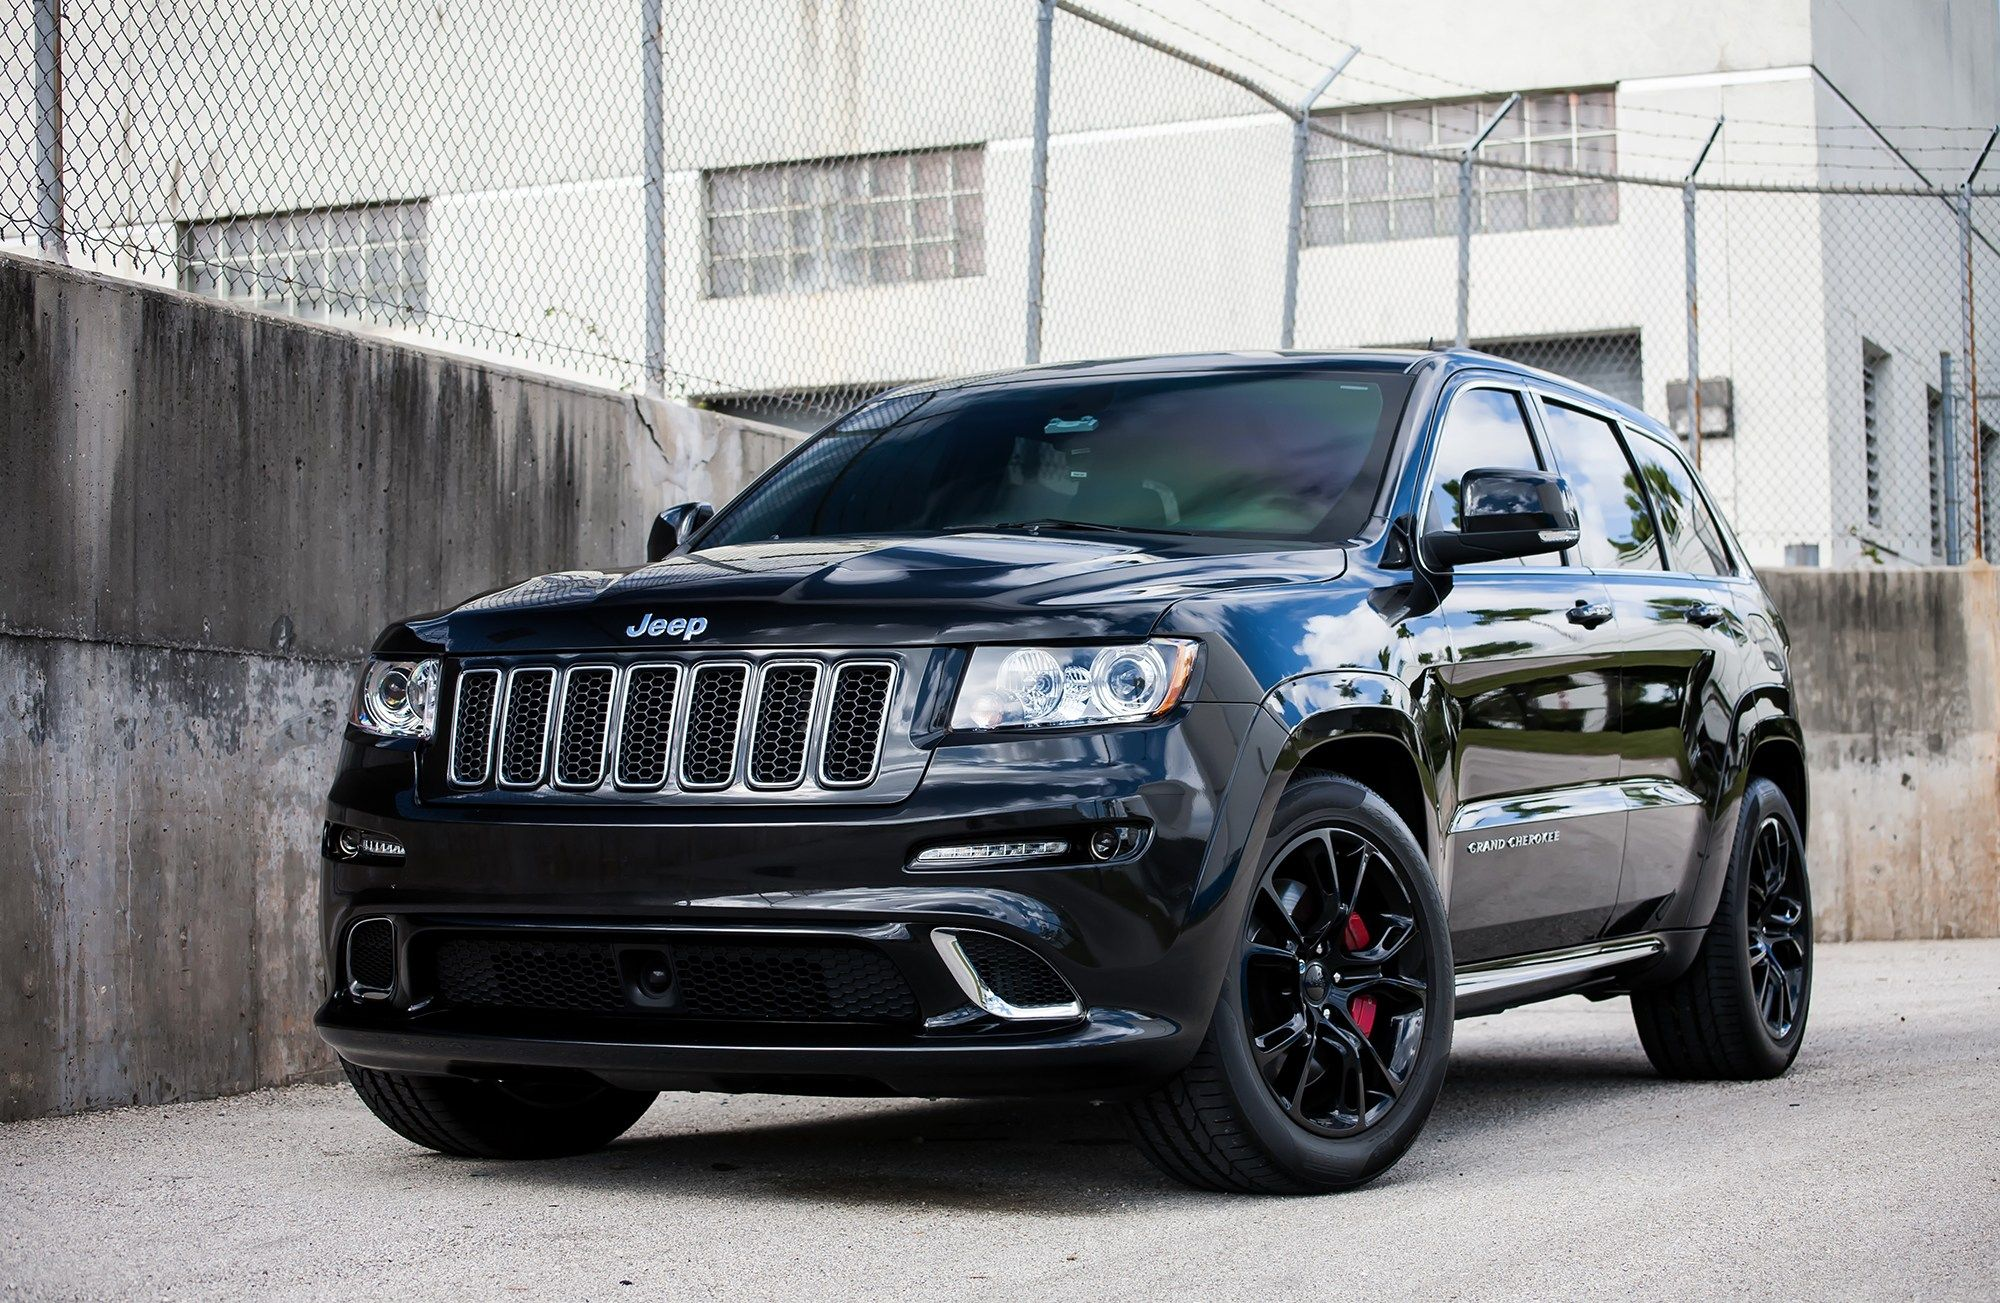 Awesome Black On Black Jeep Grand Cherokee Srt8